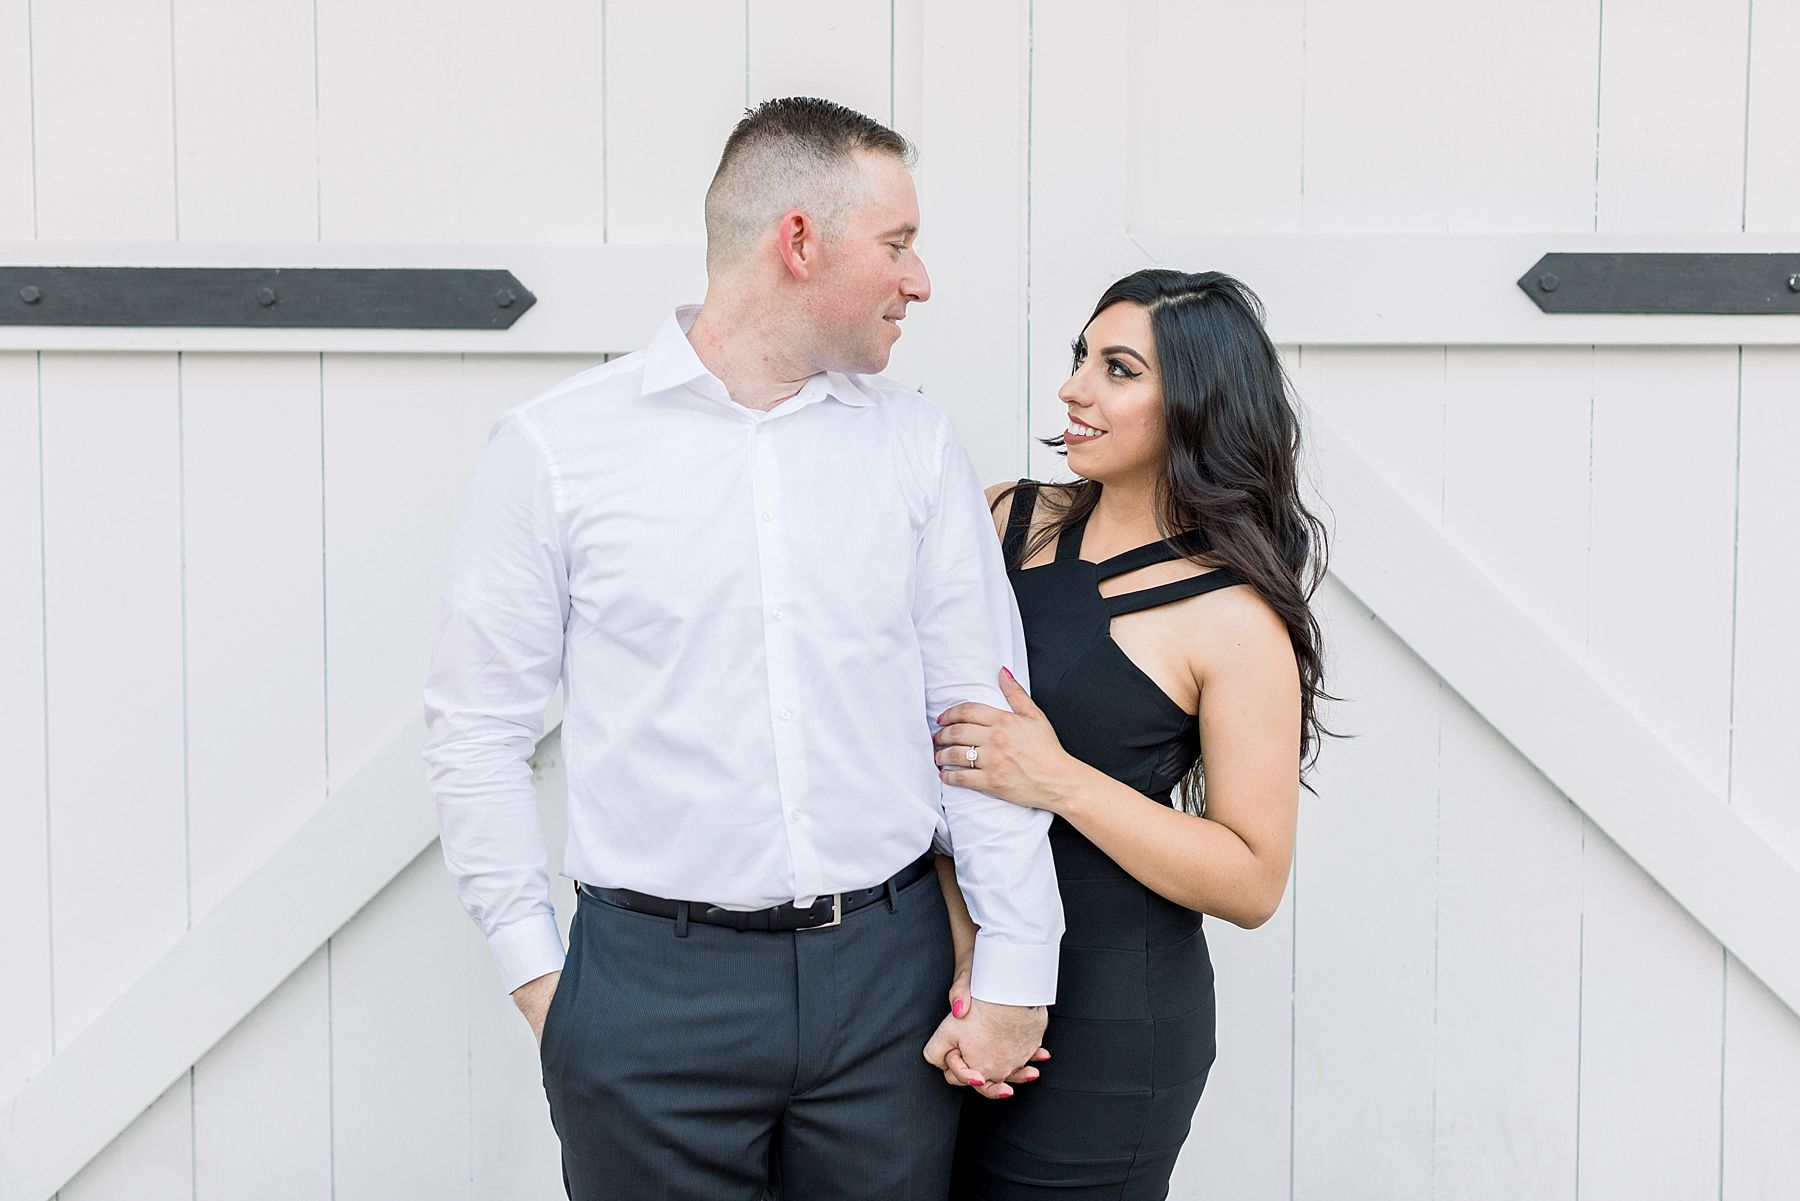 Old Sacramento Engagement Session - Downtown Sacramento Engagement Session - Black Tie Engagement Photos - Ashley Baumgartner - Sacramento Wedding Photographer_0003.jpg